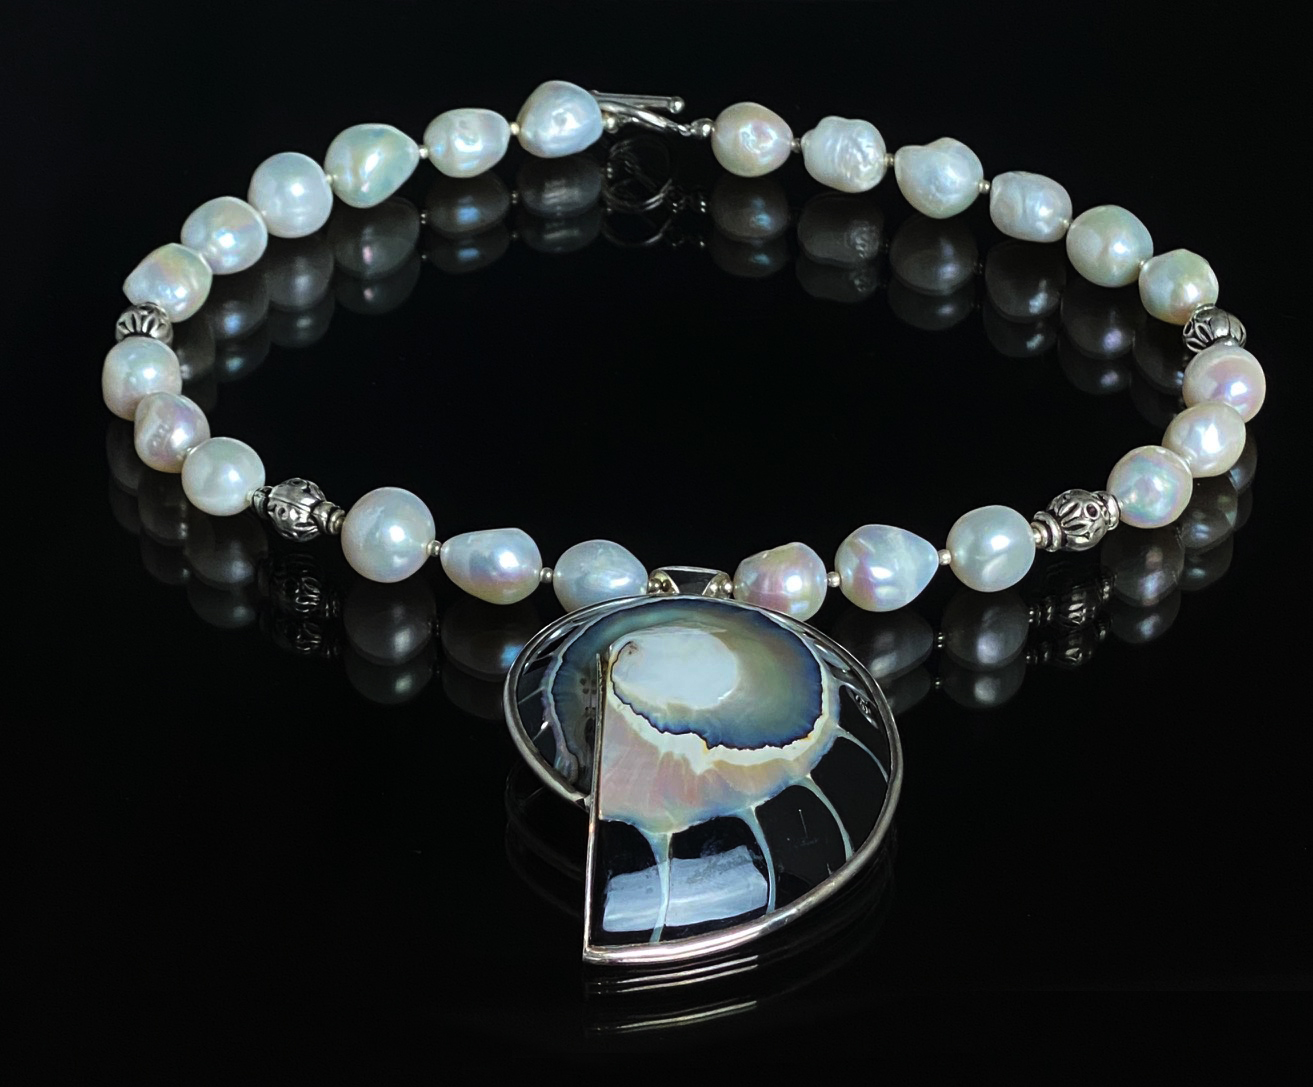 Pearl Necklace with a Nautilus Shell Pendant - CBD75